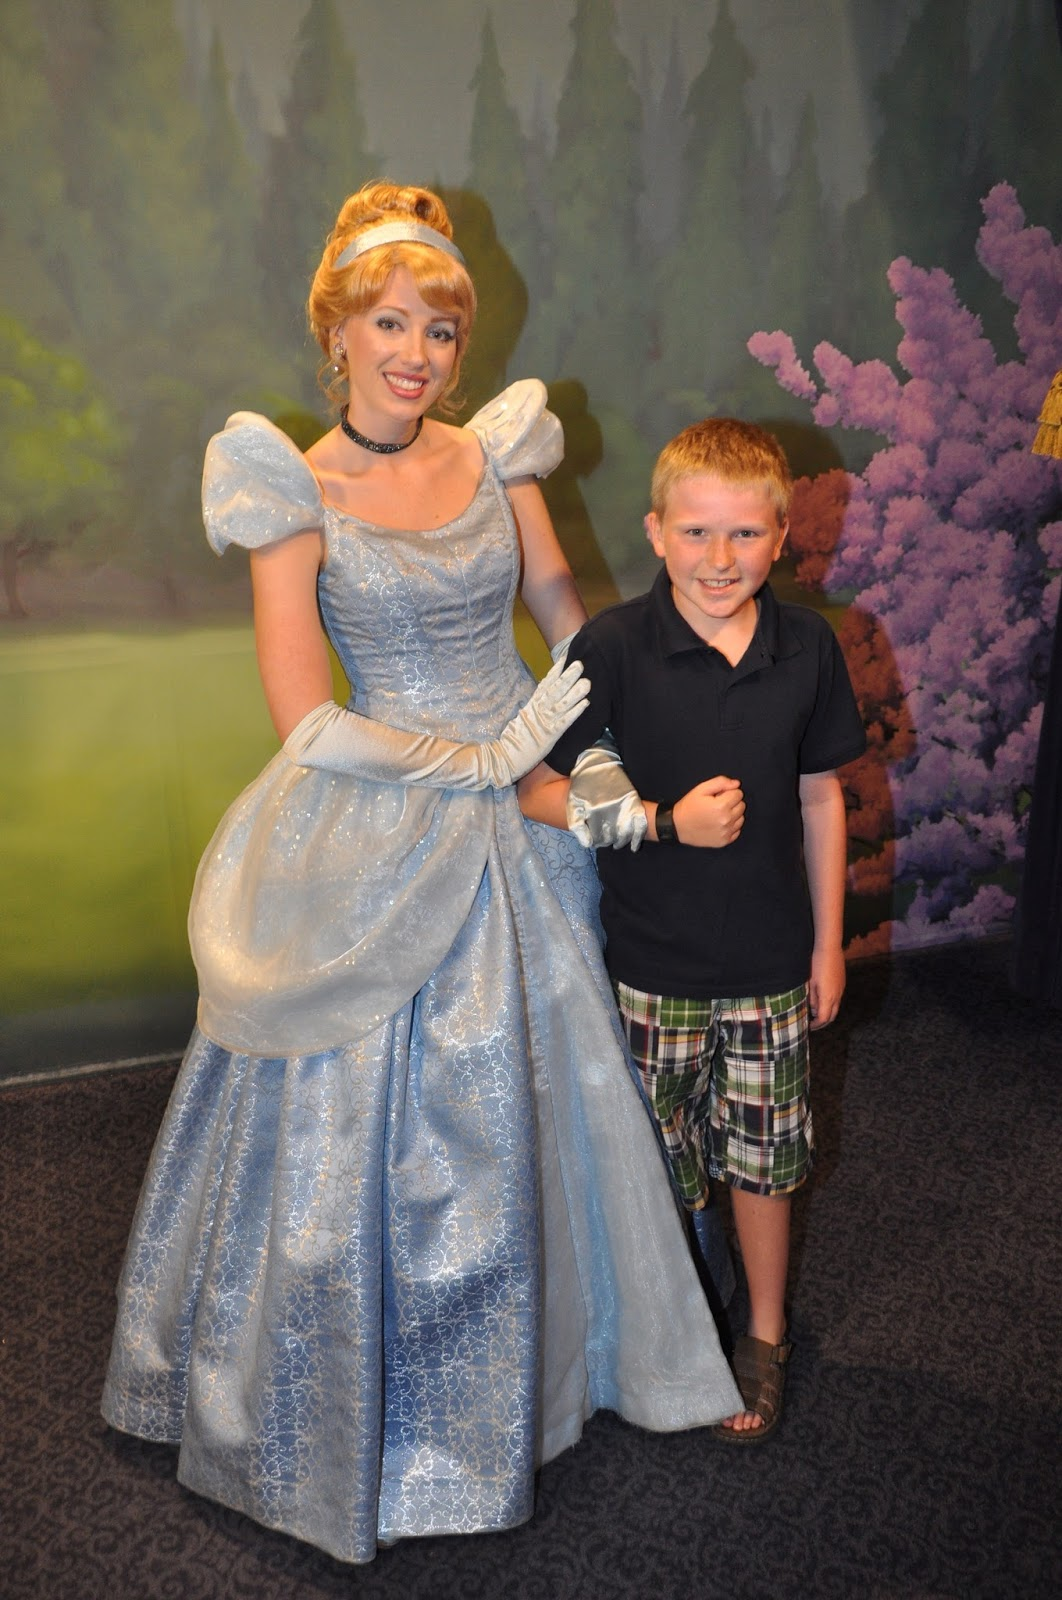 Williams family 10 out of 11 disney princesses cinderella and rapunzel were also in the magic kingdom at town square theater on main street usa note the princess meet and greet location in magic m4hsunfo